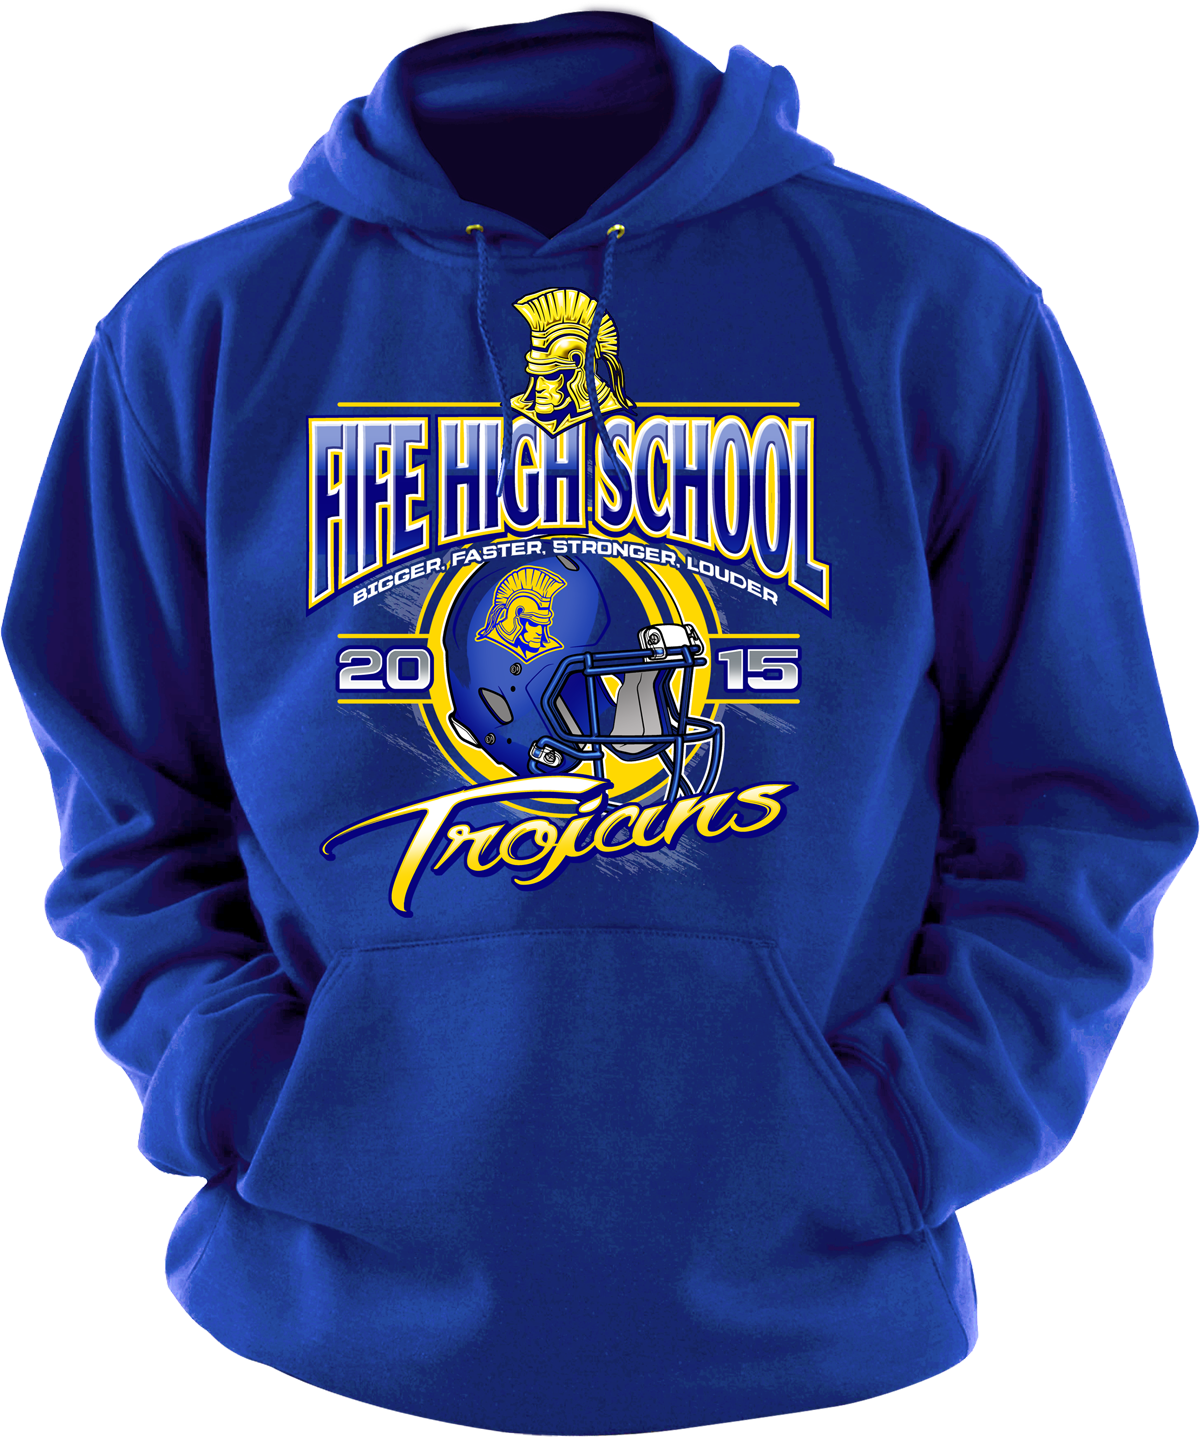 Fife High School Football Hoodie, Northwest Embroidery